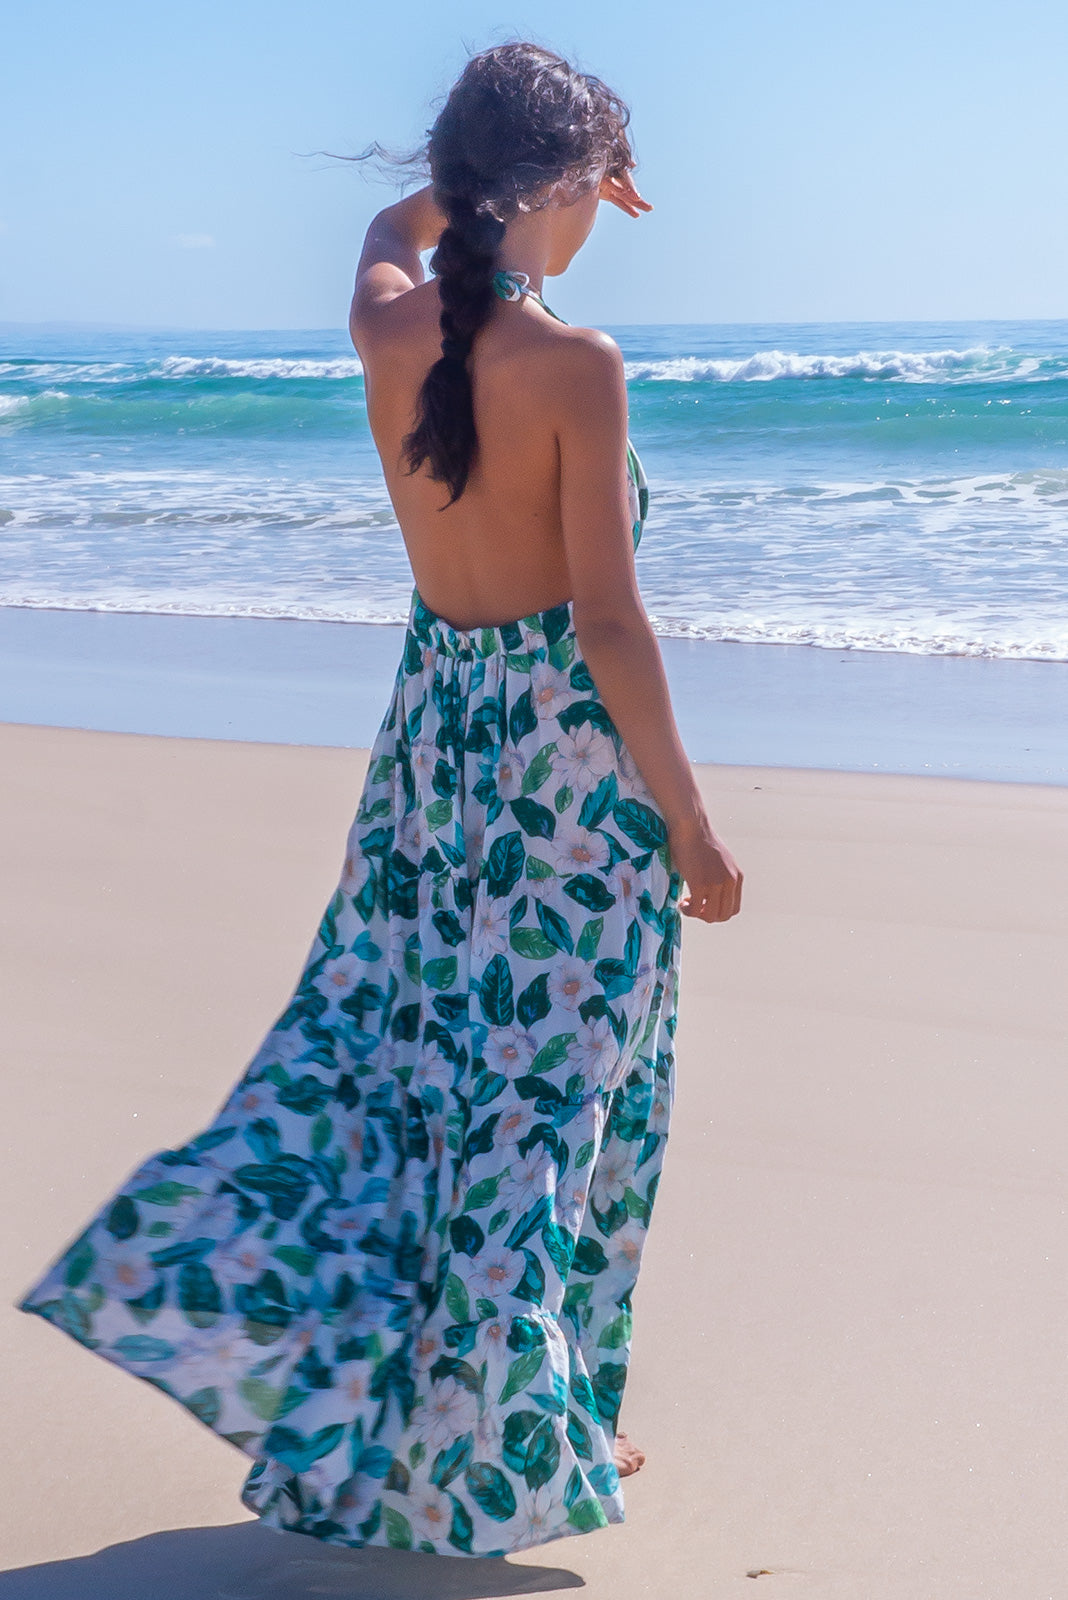 The Charlie White Knight Maxi Dress is a backless dress featuring halter neck with tie up straps and ring feature, elasticated back waistband, tiered skirt, deep side pockets and 100% cotton in white base with large white and green floral print.